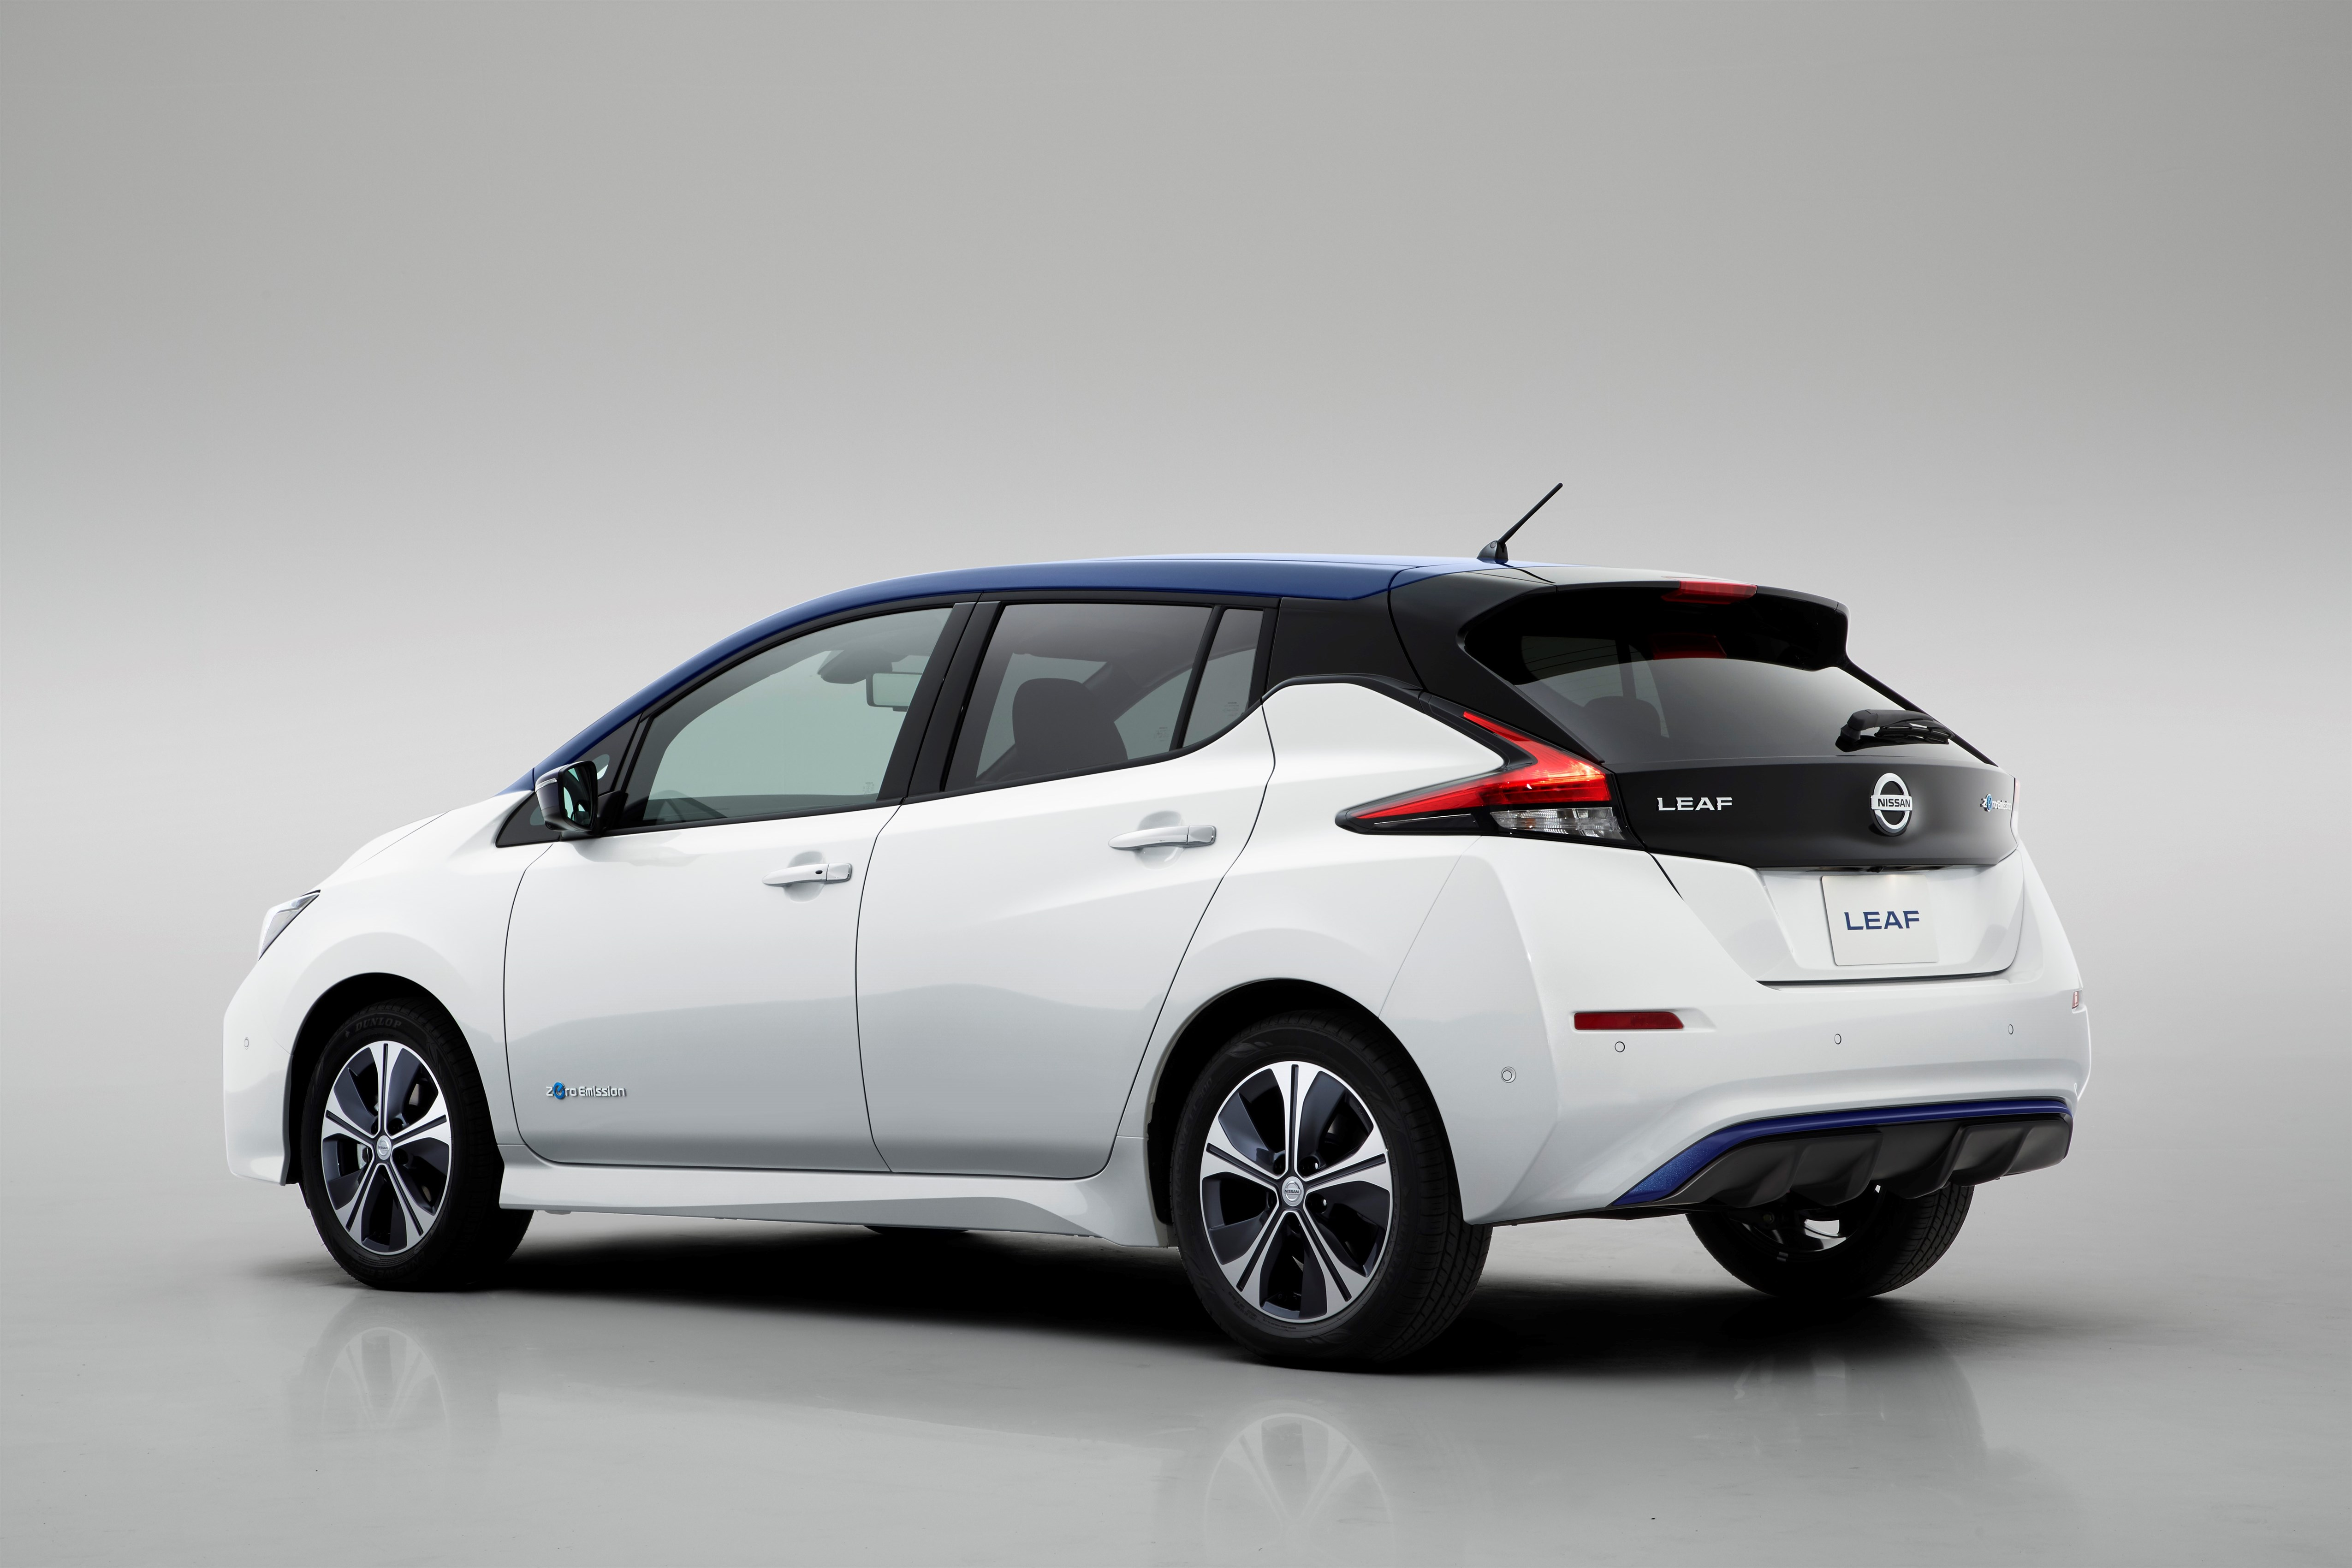 la nissan leaf long range rivalisera avec la tesla model 3 frandroid. Black Bedroom Furniture Sets. Home Design Ideas